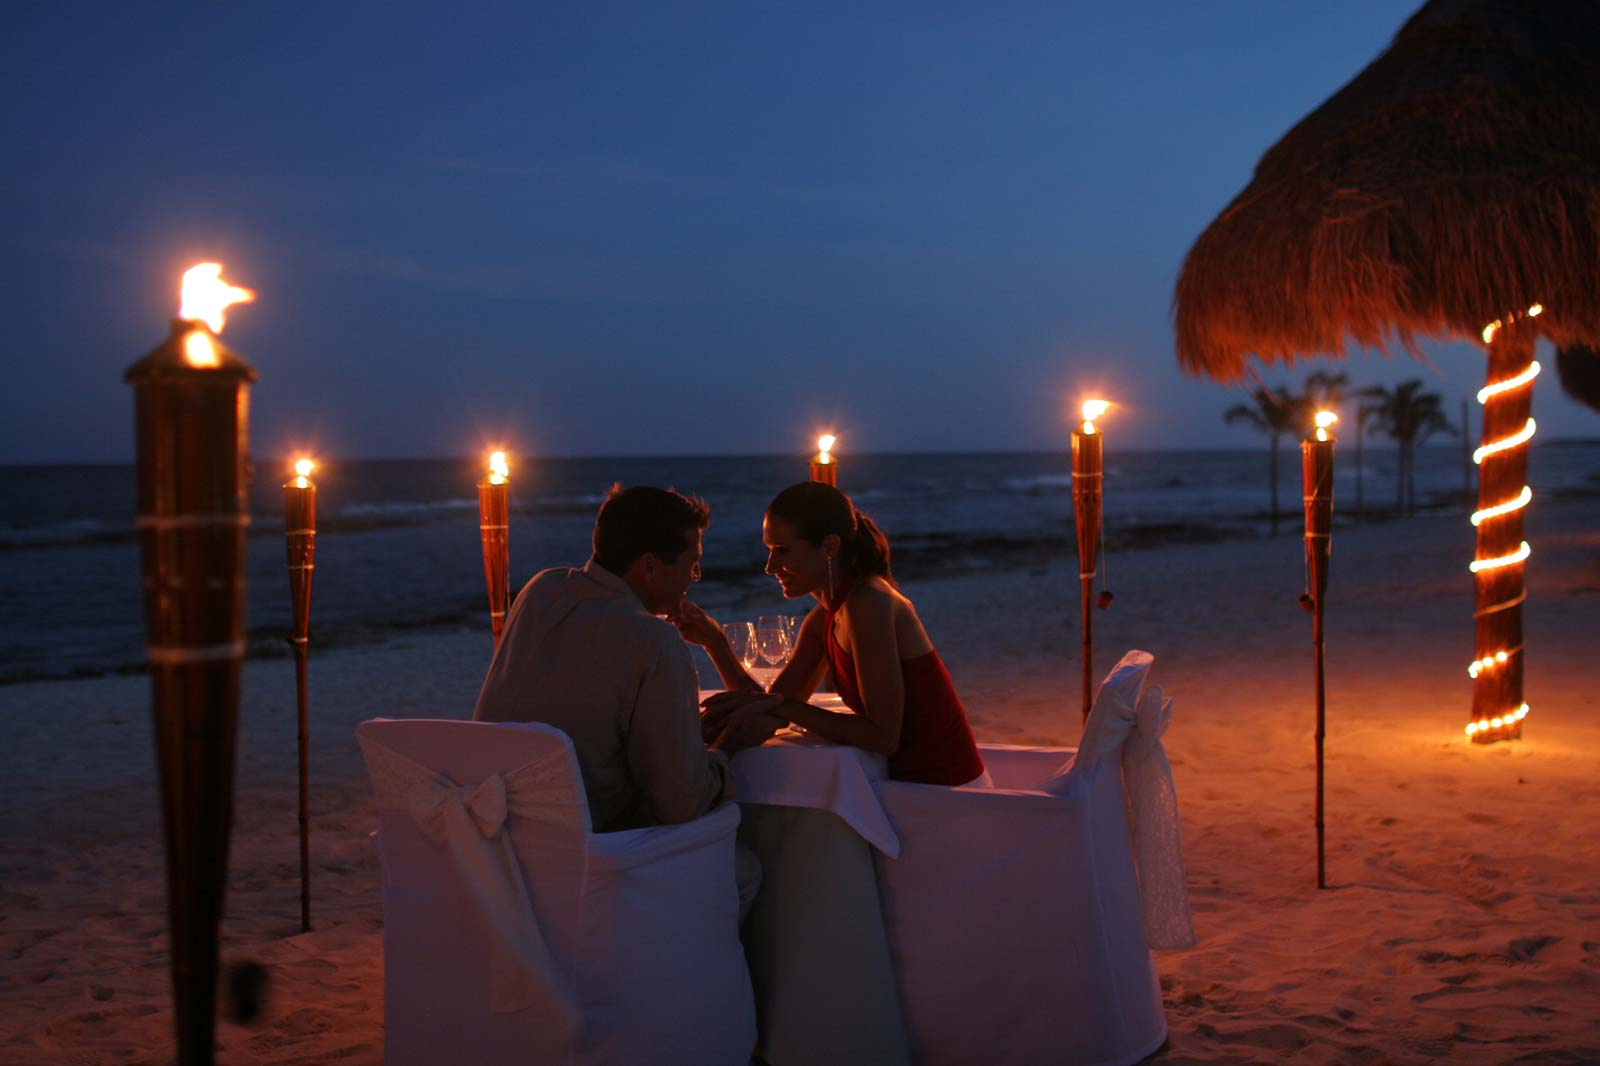 Romantic Valnetines Day date Ideas for Him